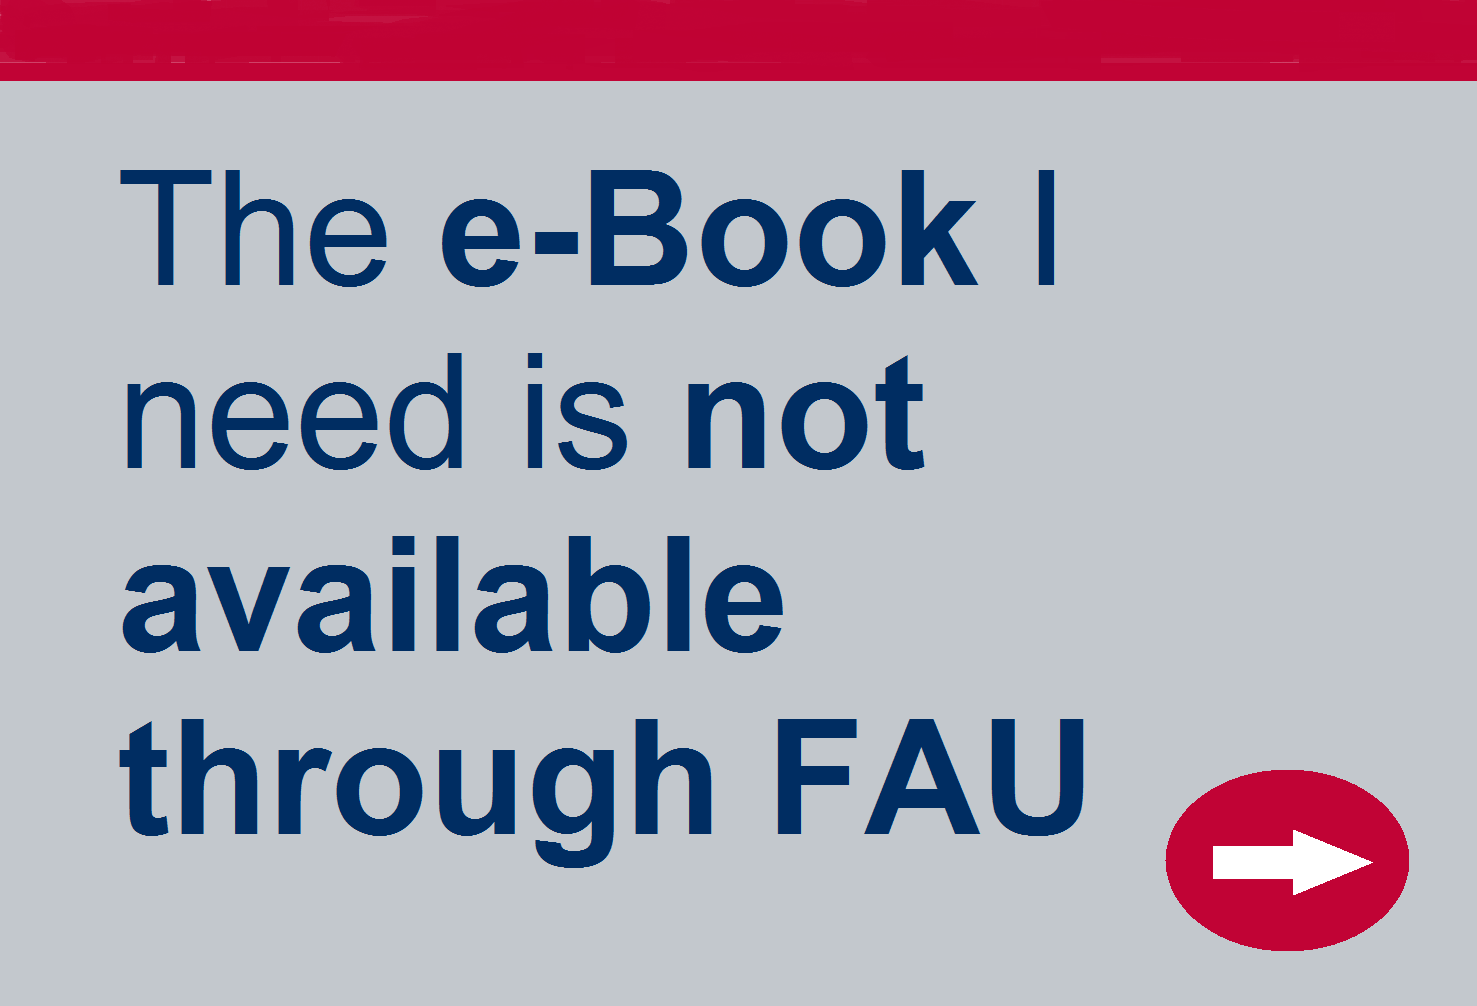 E-Book is not available through FAU